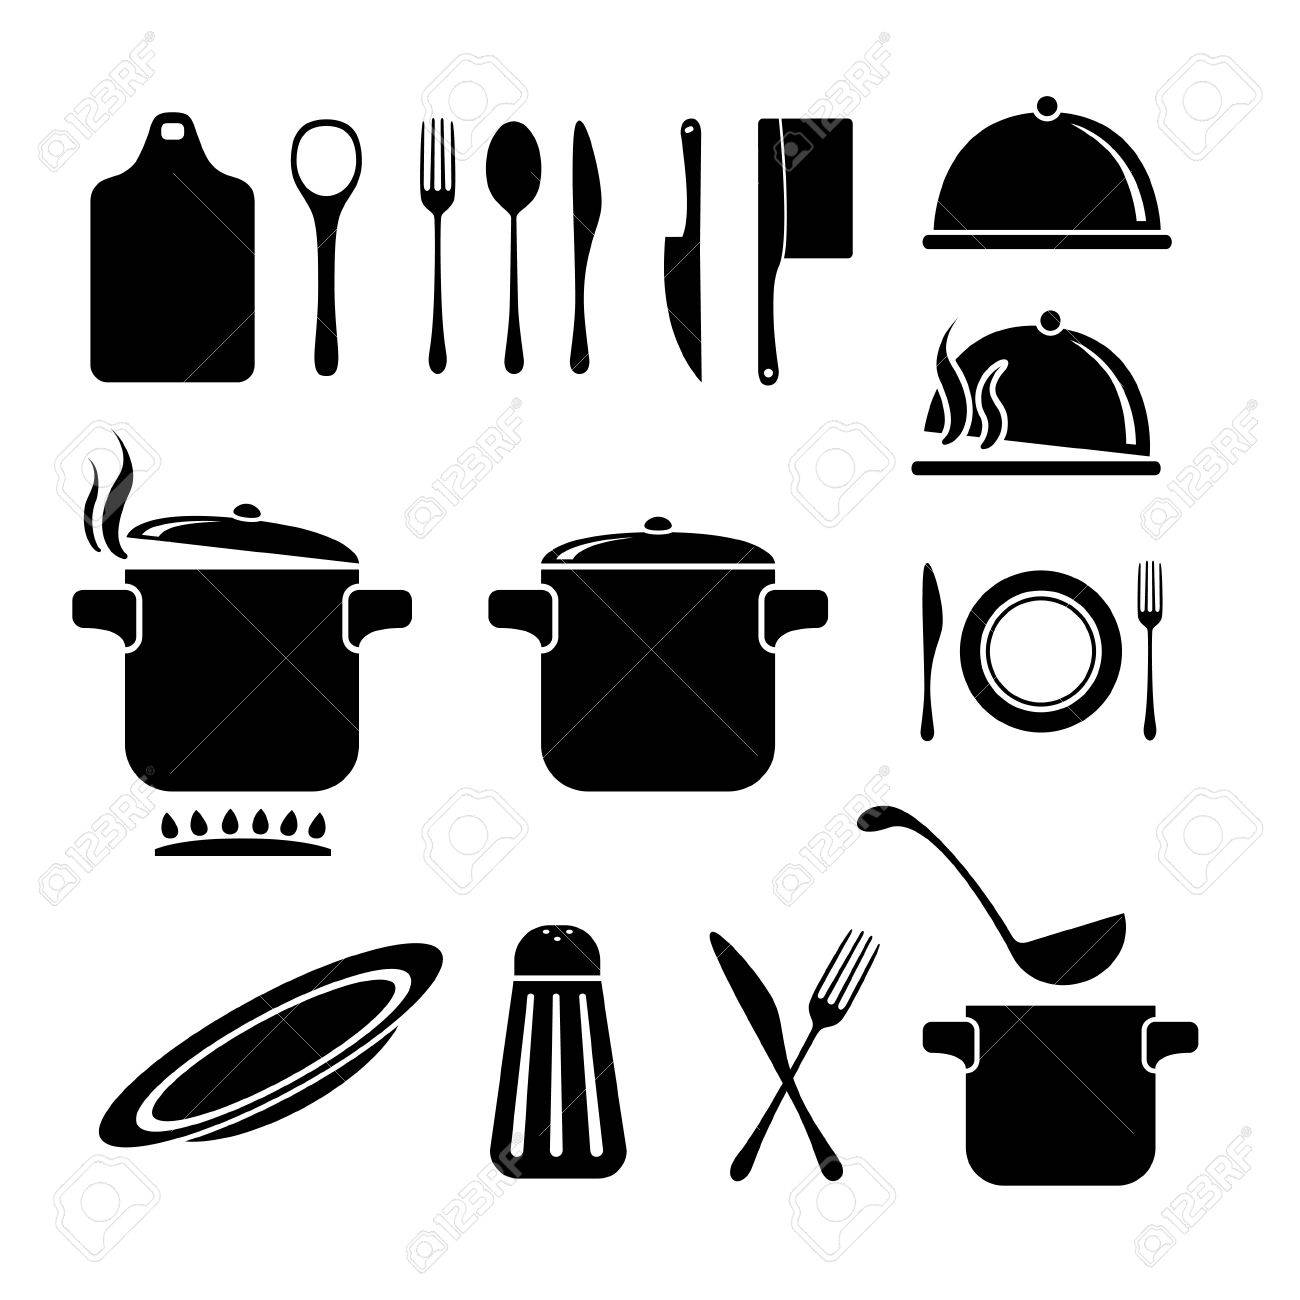 Kitchen Vector Icons Set Royalty Free Cliparts Vectors And Stock Illustration Image 43736134